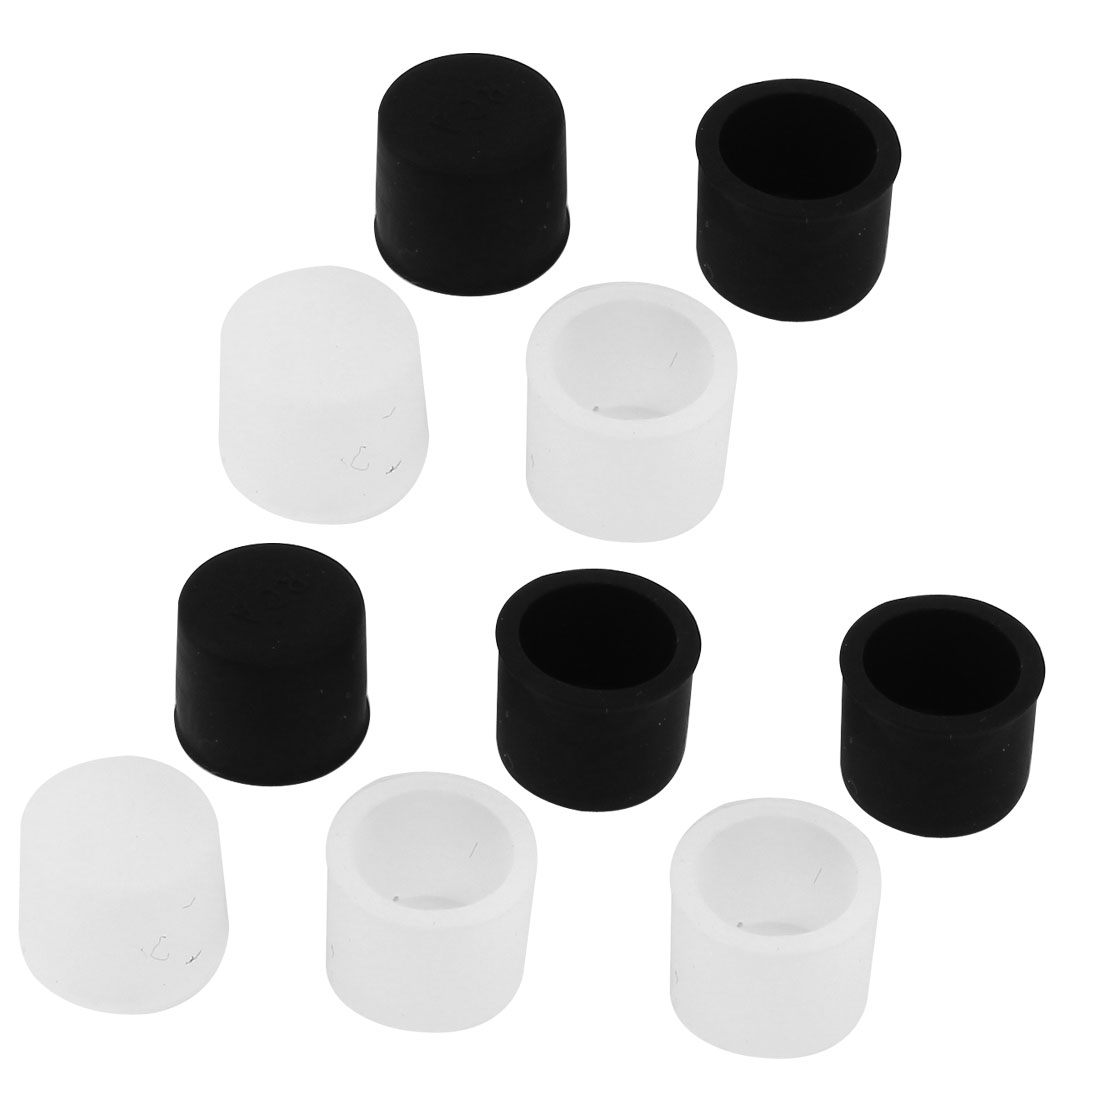 10 Pcs Black Clear Silicone RCA Female Connector Dust Proof Protector Cover